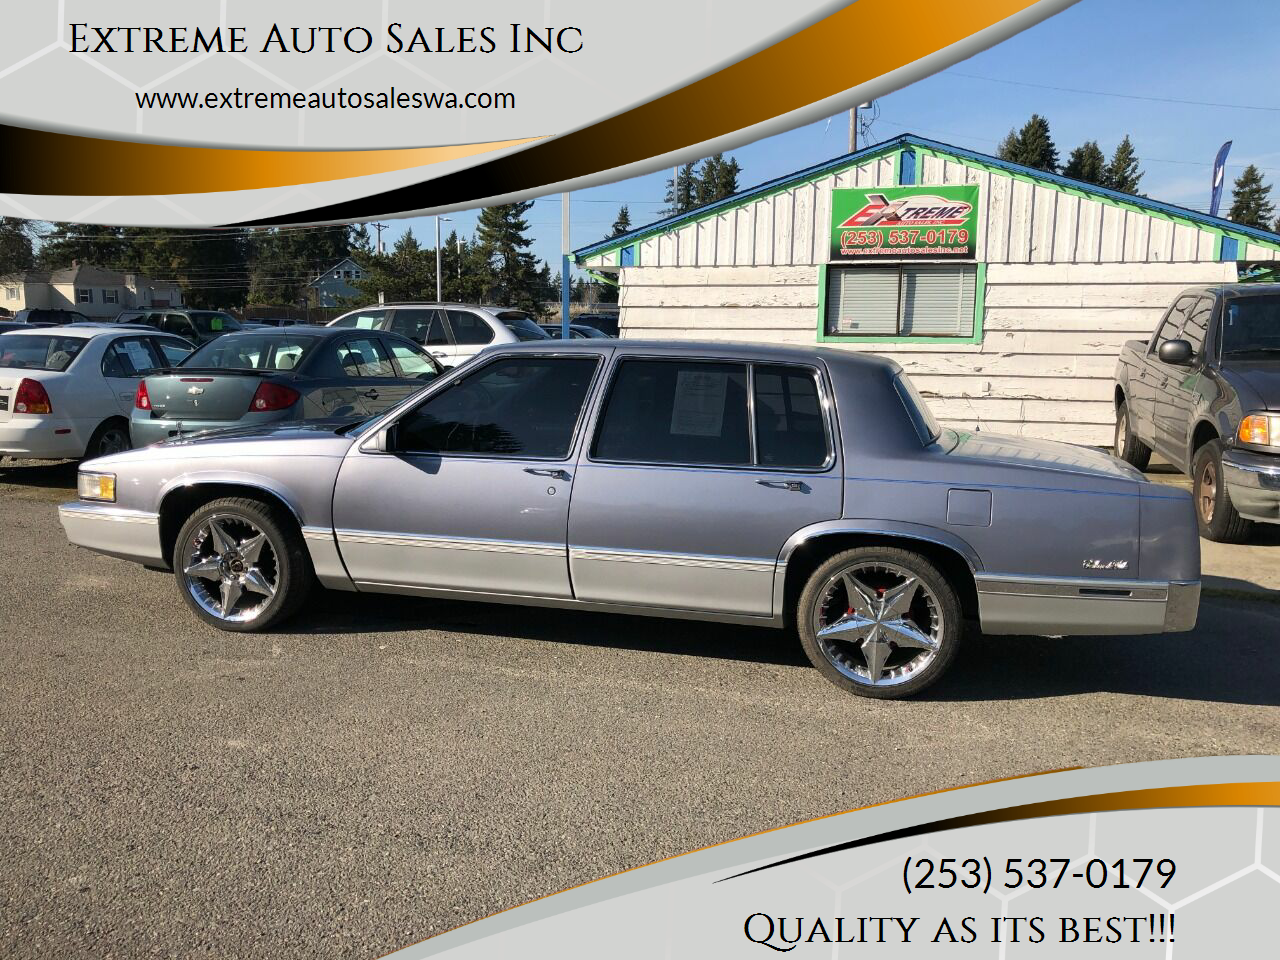 extreme auto sales inc in puyallup wa carsforsale com extreme auto sales inc in puyallup wa